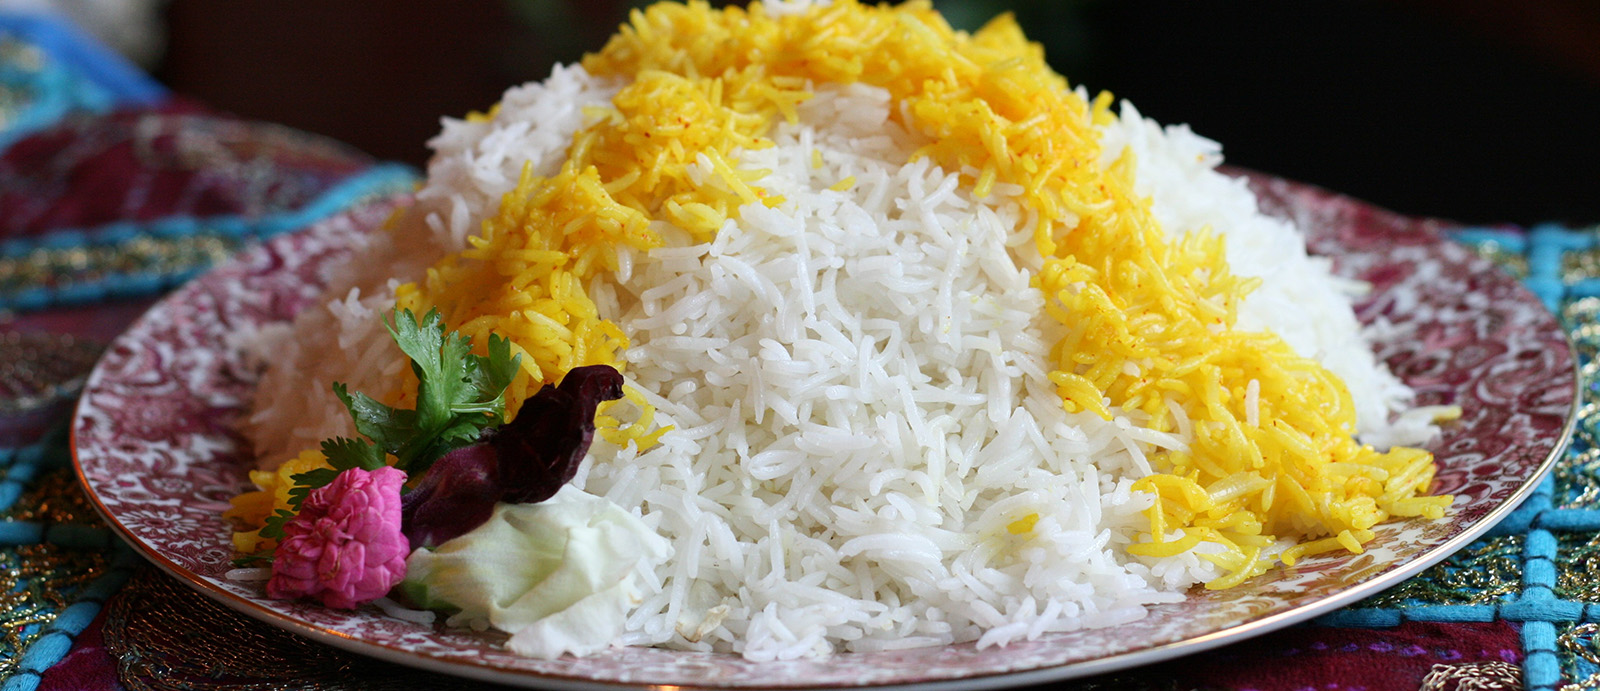 how important is Persian rice for people?